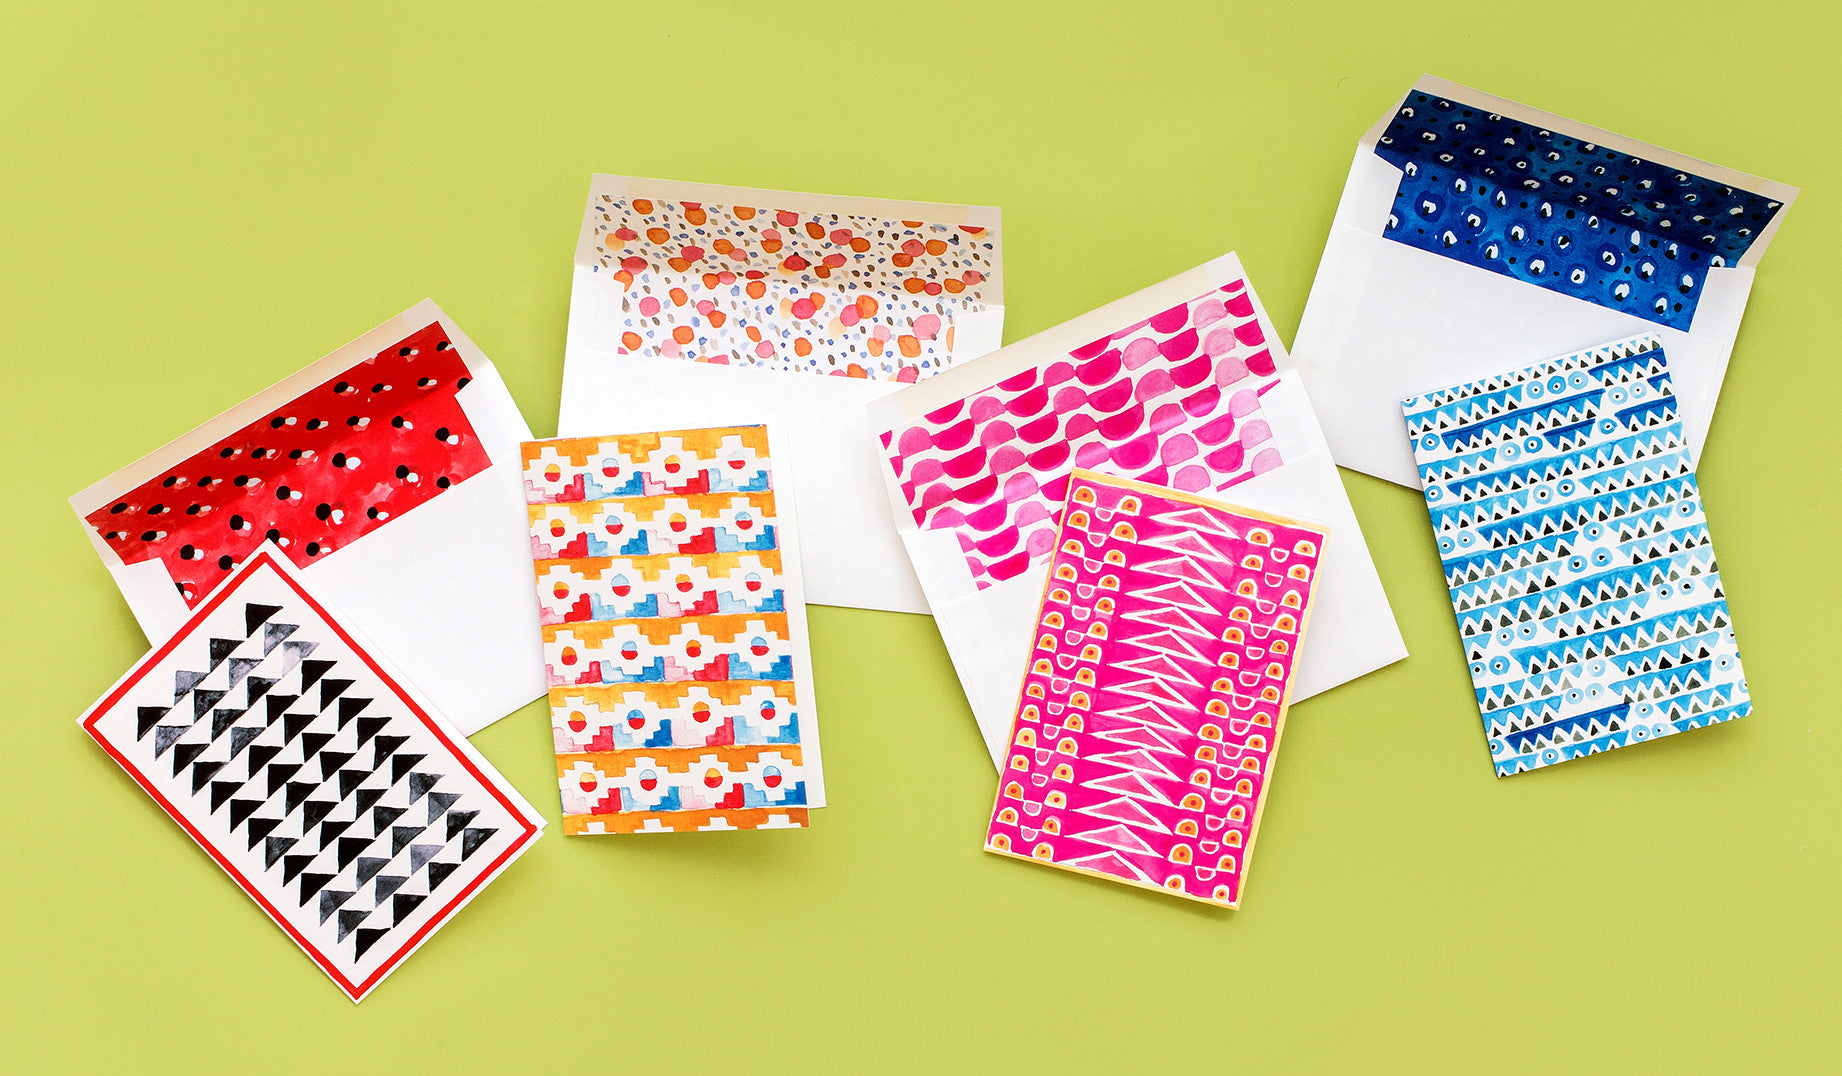 We are longtime fans of Block Shop's bright geometric patterns. So when it came time to get started on our Paper Cuts collaboration, we wanted to include as much of their beautful original artwork as possible. These unique stationery sets feature 4 cards with bold watercolor paintings and matching lined envelopes, all printed on our signature eggshell paper. Photos of Block Shop by Laure Joliet.